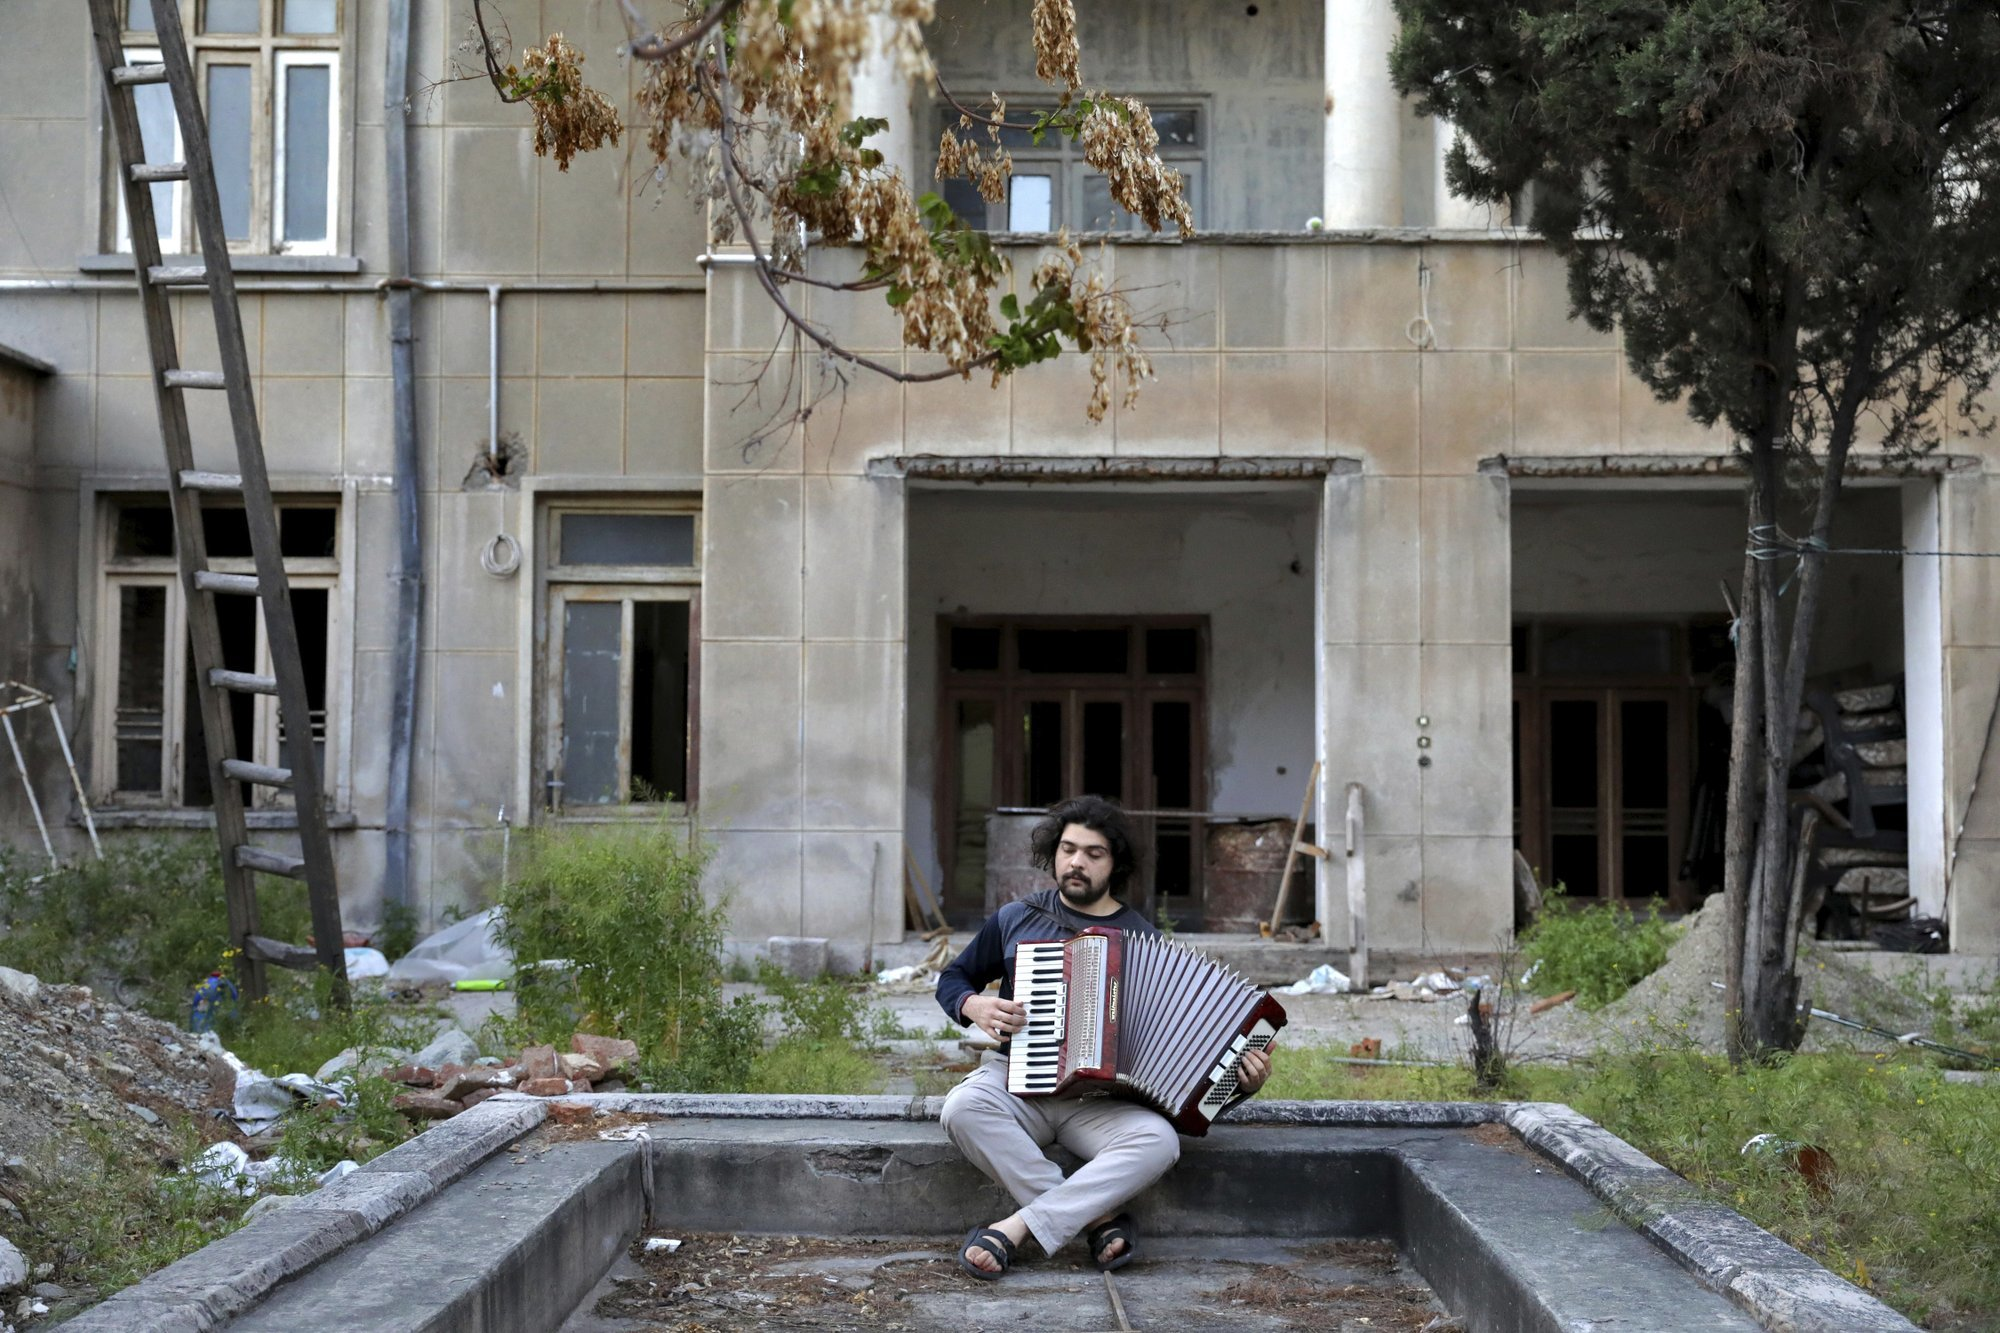 Kaveh Ghaffari, 26, plays accordion at the yard of his house during mandatory self-isolation due to the new coronavirus disease outbreak, in Tehran Iran. (AP Photo/Ebrahim Noroozi)